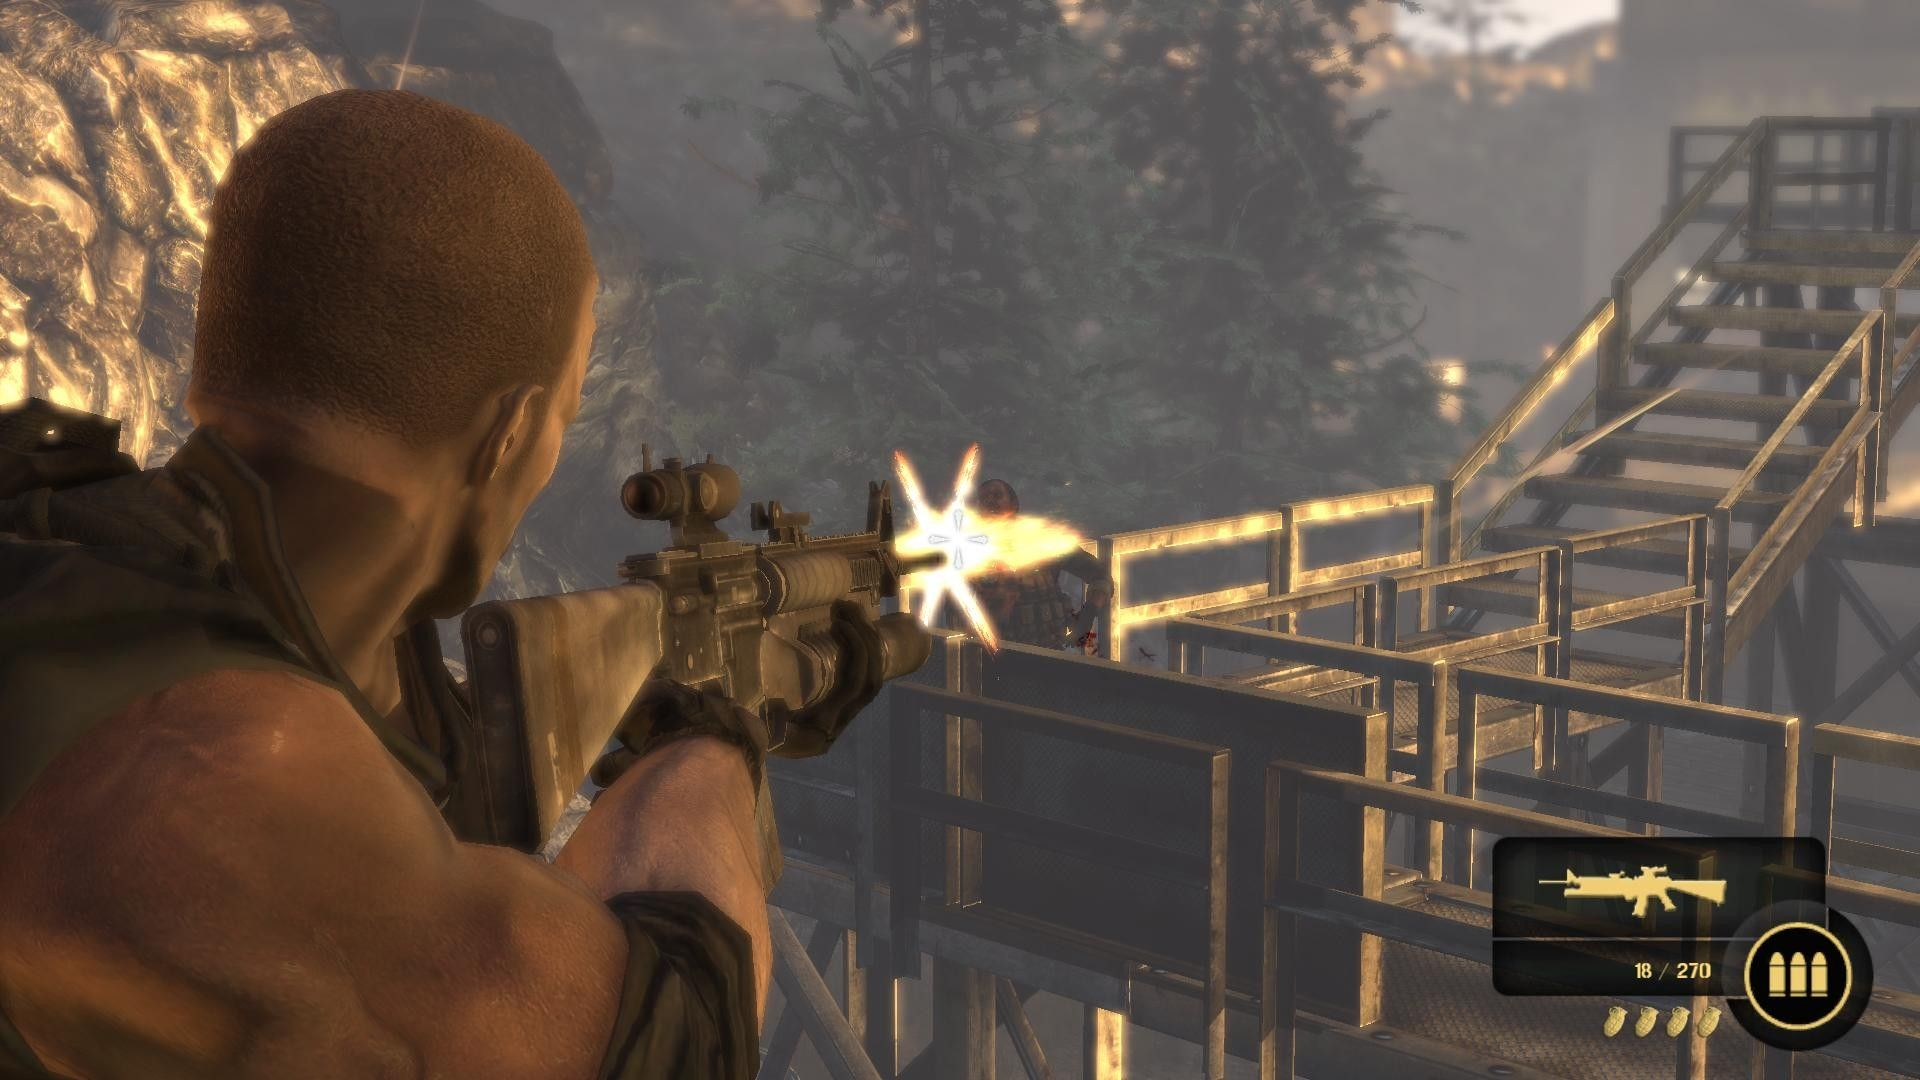 third person shooter video game - HD1920×1080